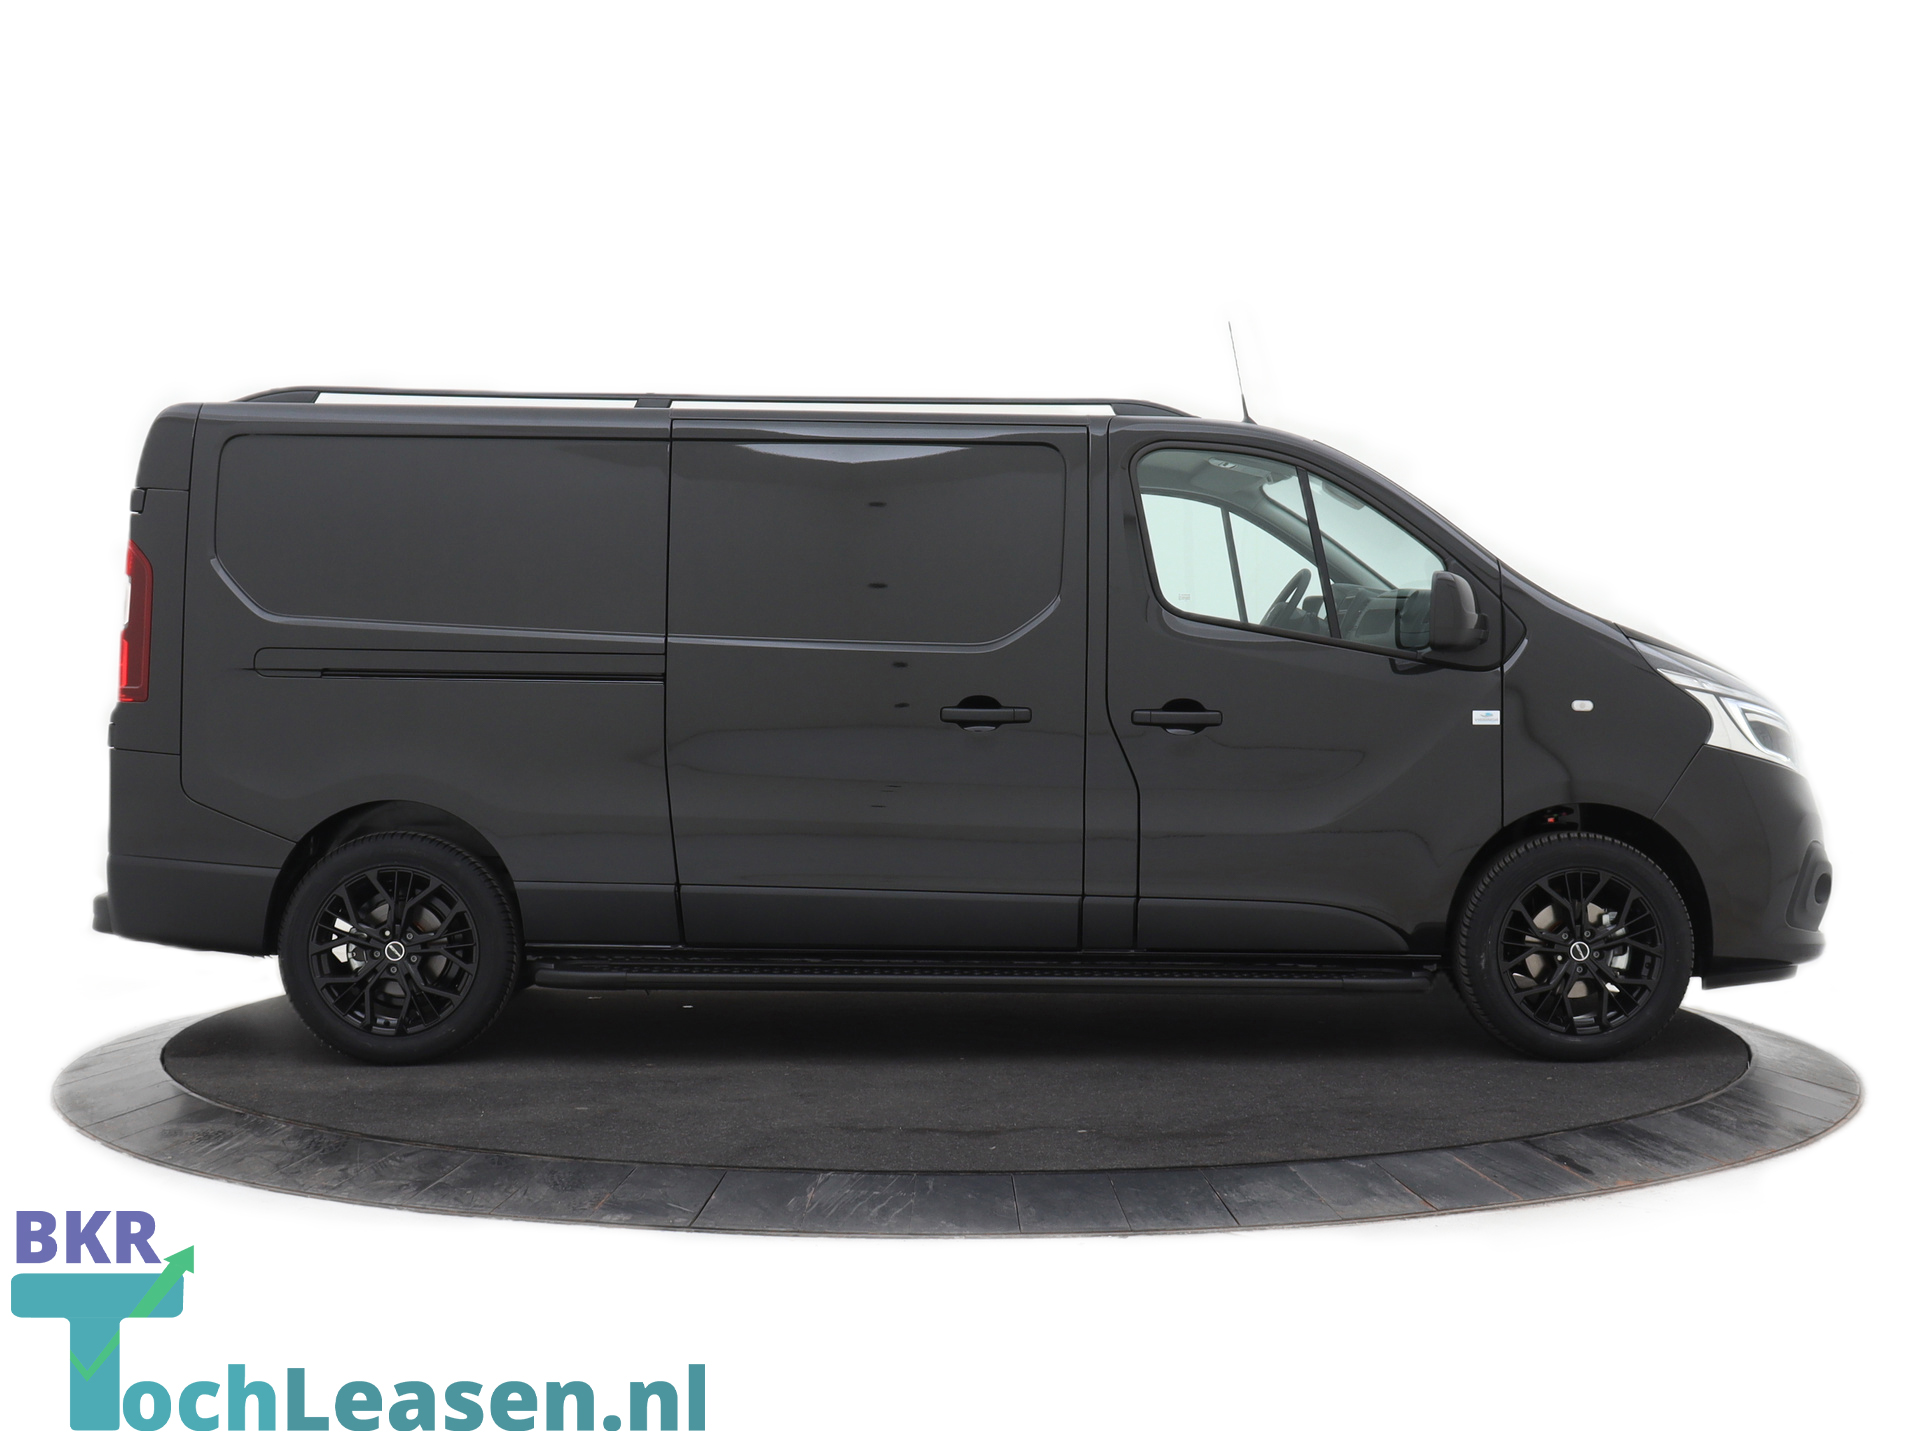 BKRTochLeasen.nl - Renault Trafic Special L2H1